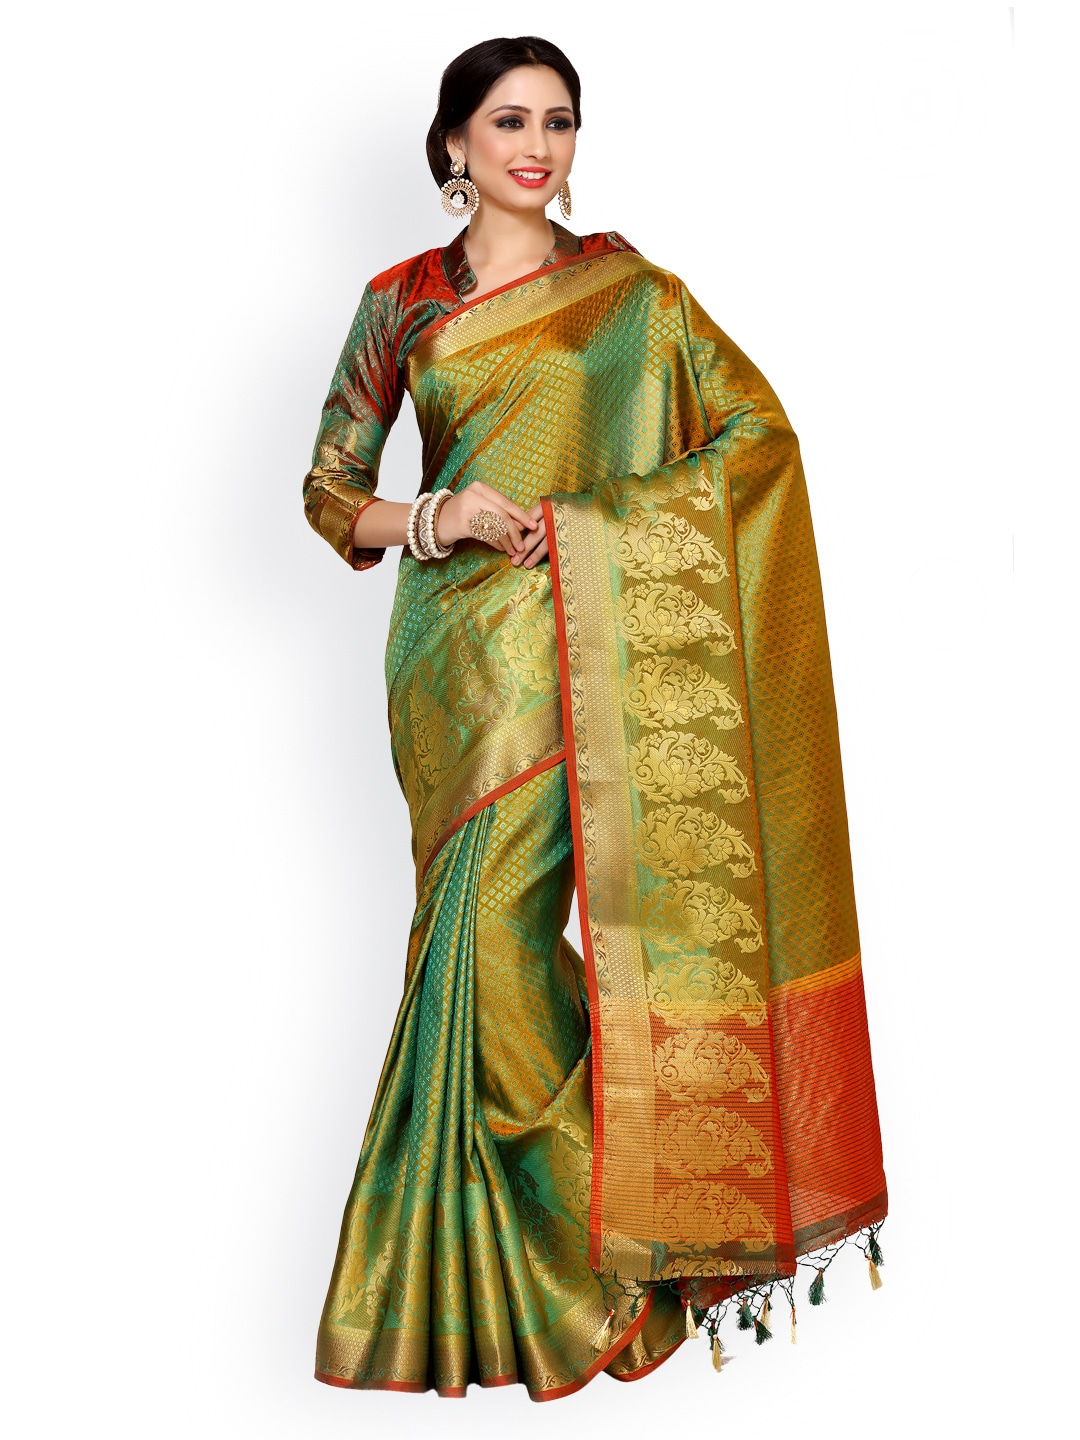 8798923d37c Saree - Buy Sarees Online at Best Price in India